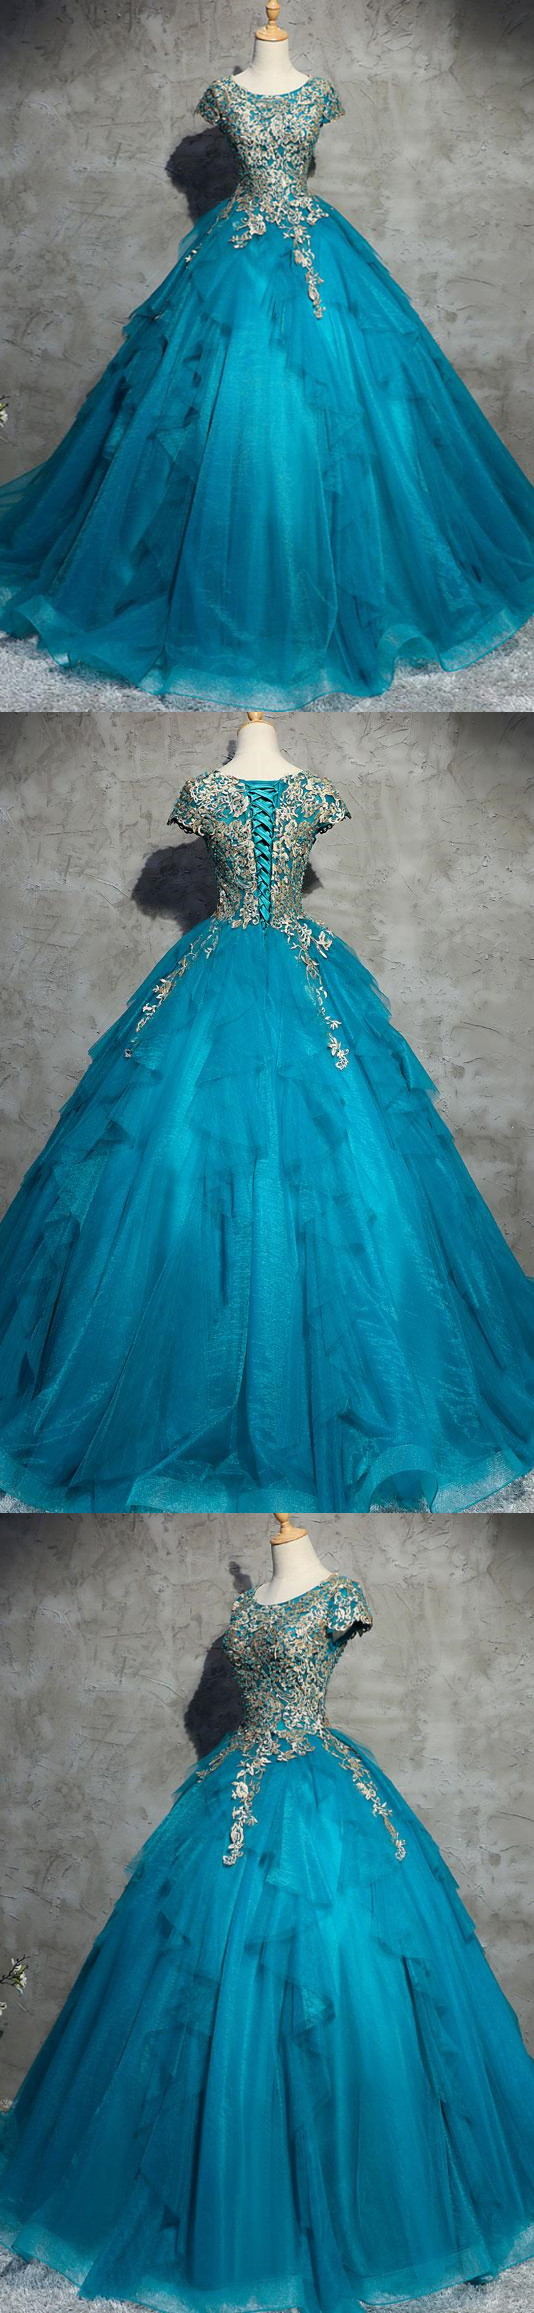 Ball gown prom dress appliques floorlength short sleeve prom dress